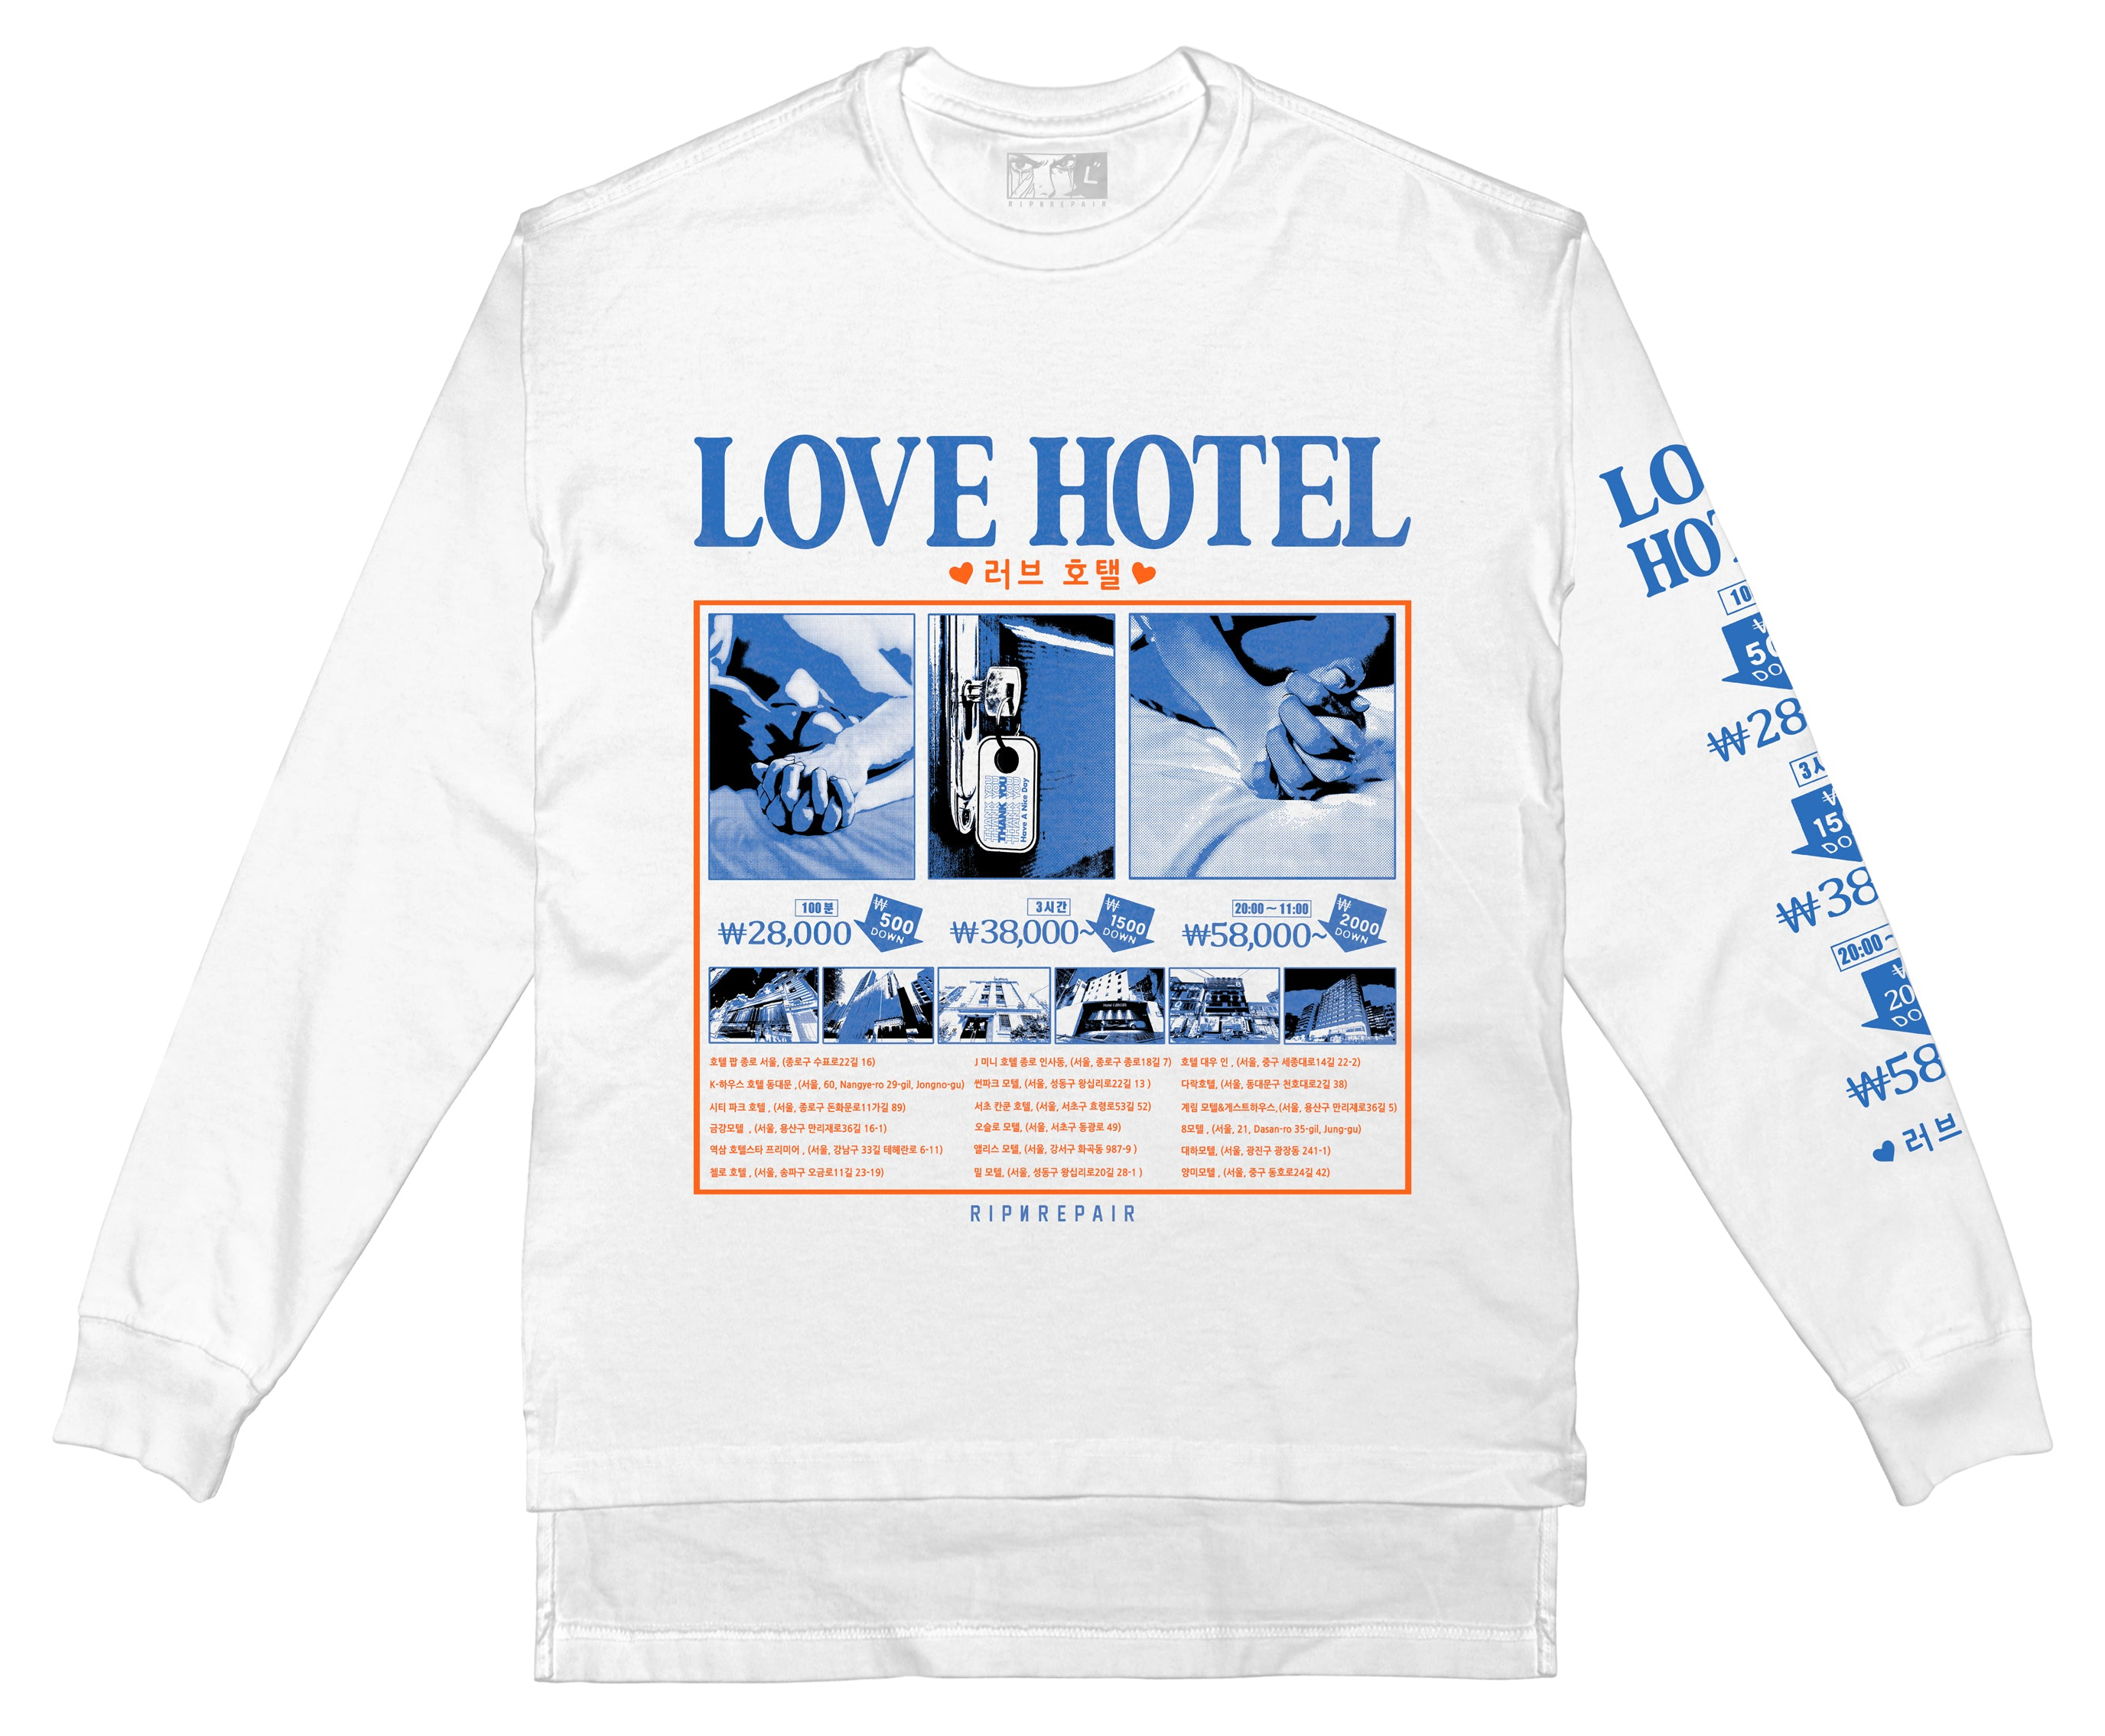 Do Not Disturb - Long Sleeve (White) - RIPNRPR